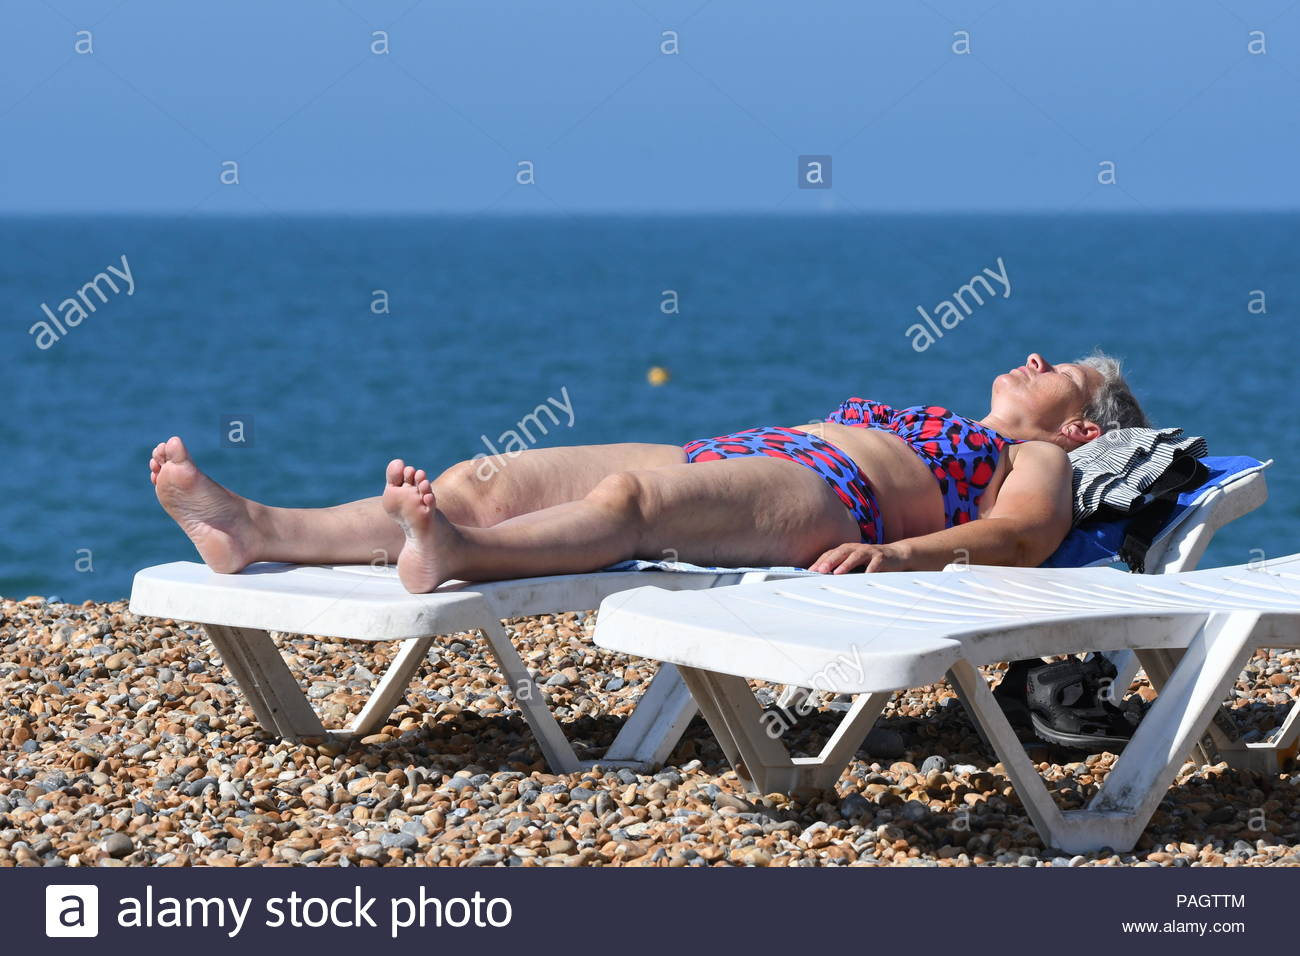 Brighton, East Sussex, UK. Monday 23rd July 2018. A woman sunbathes on the beach on another hot and sunny morning in Brighton. The temperature is expected to reach 24C today, reaching into the 30s by midweek. Credit: Geoff Smith / Alamy Live News Stock Photo